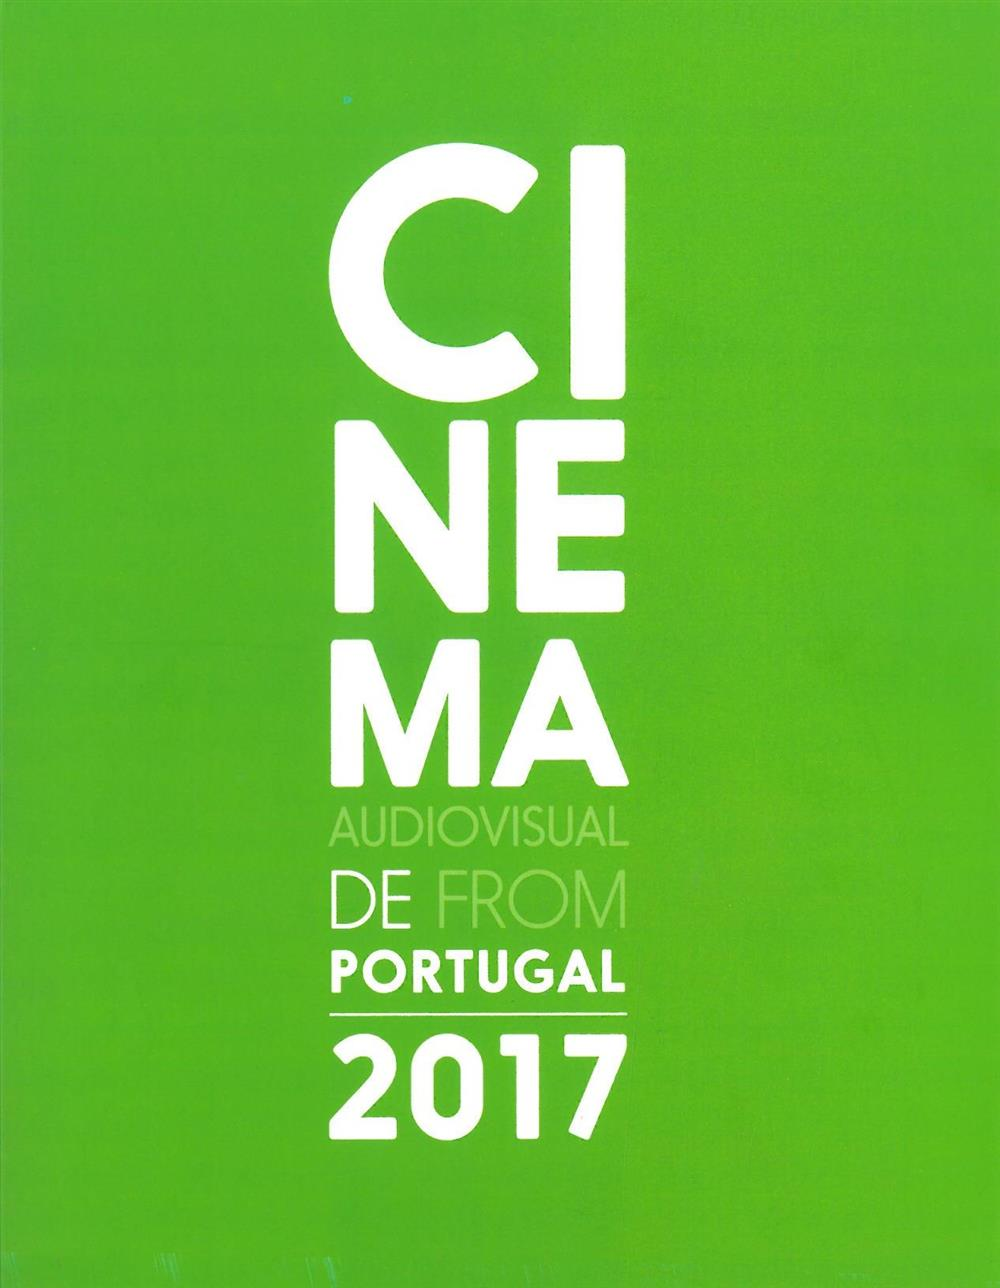 Cinema audiovisual de Portugal_.jpg